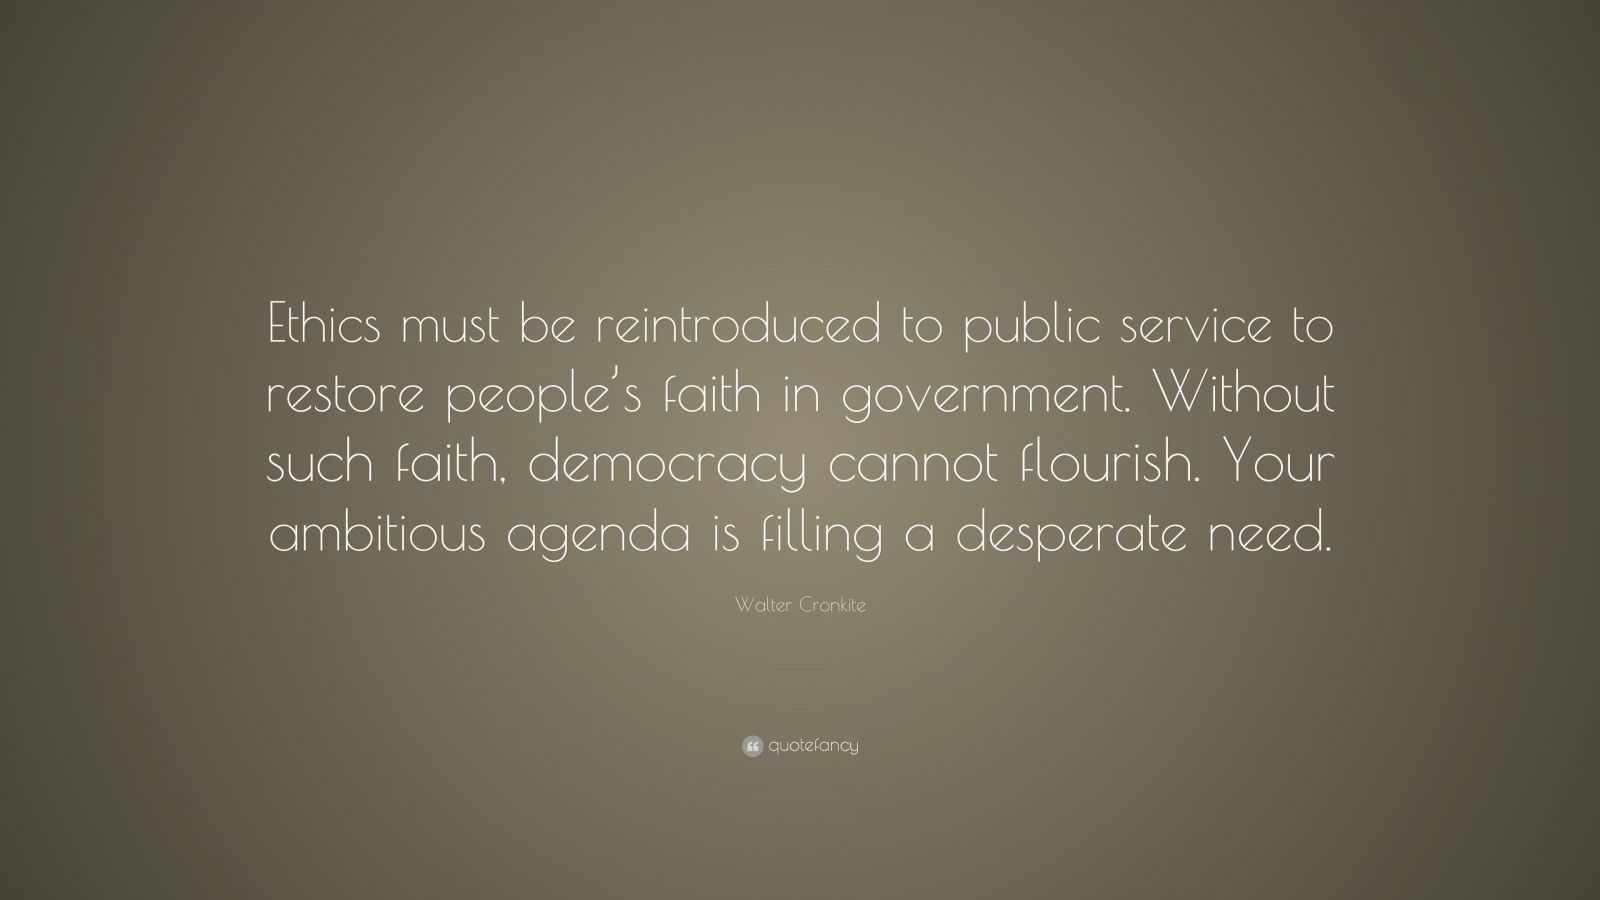 """Walter Cronkite Quote: """"Ethics must be reintroduced to public service to restore people's faith in government. Without such faith, democracy cannot flourish. Your ambitious agenda is filling a desperate need."""""""